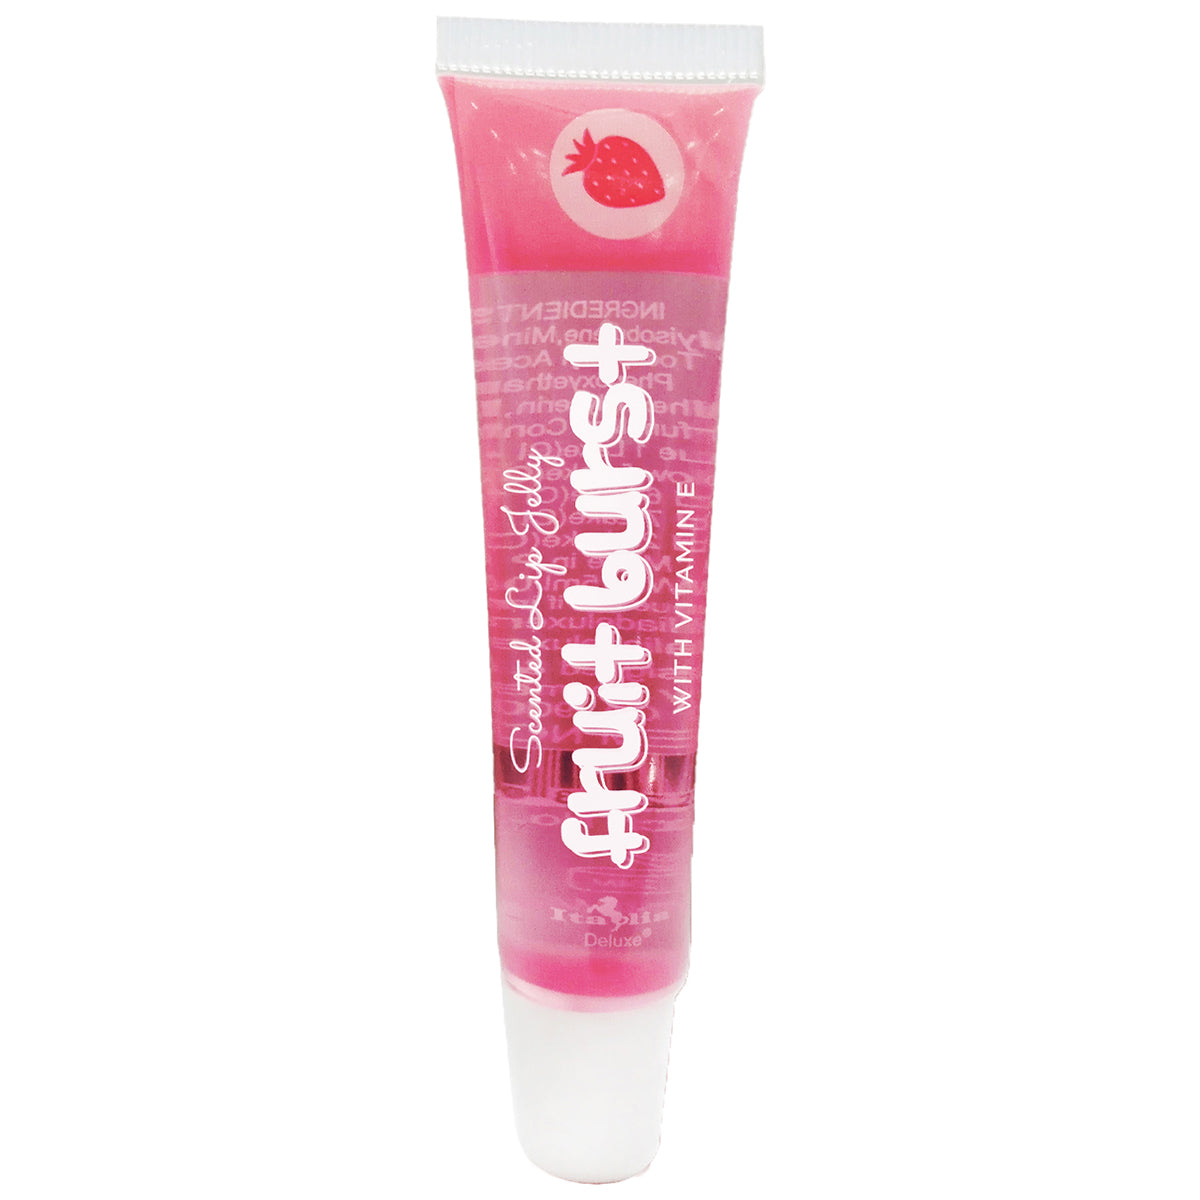 Fruit Burst Lip Jelly